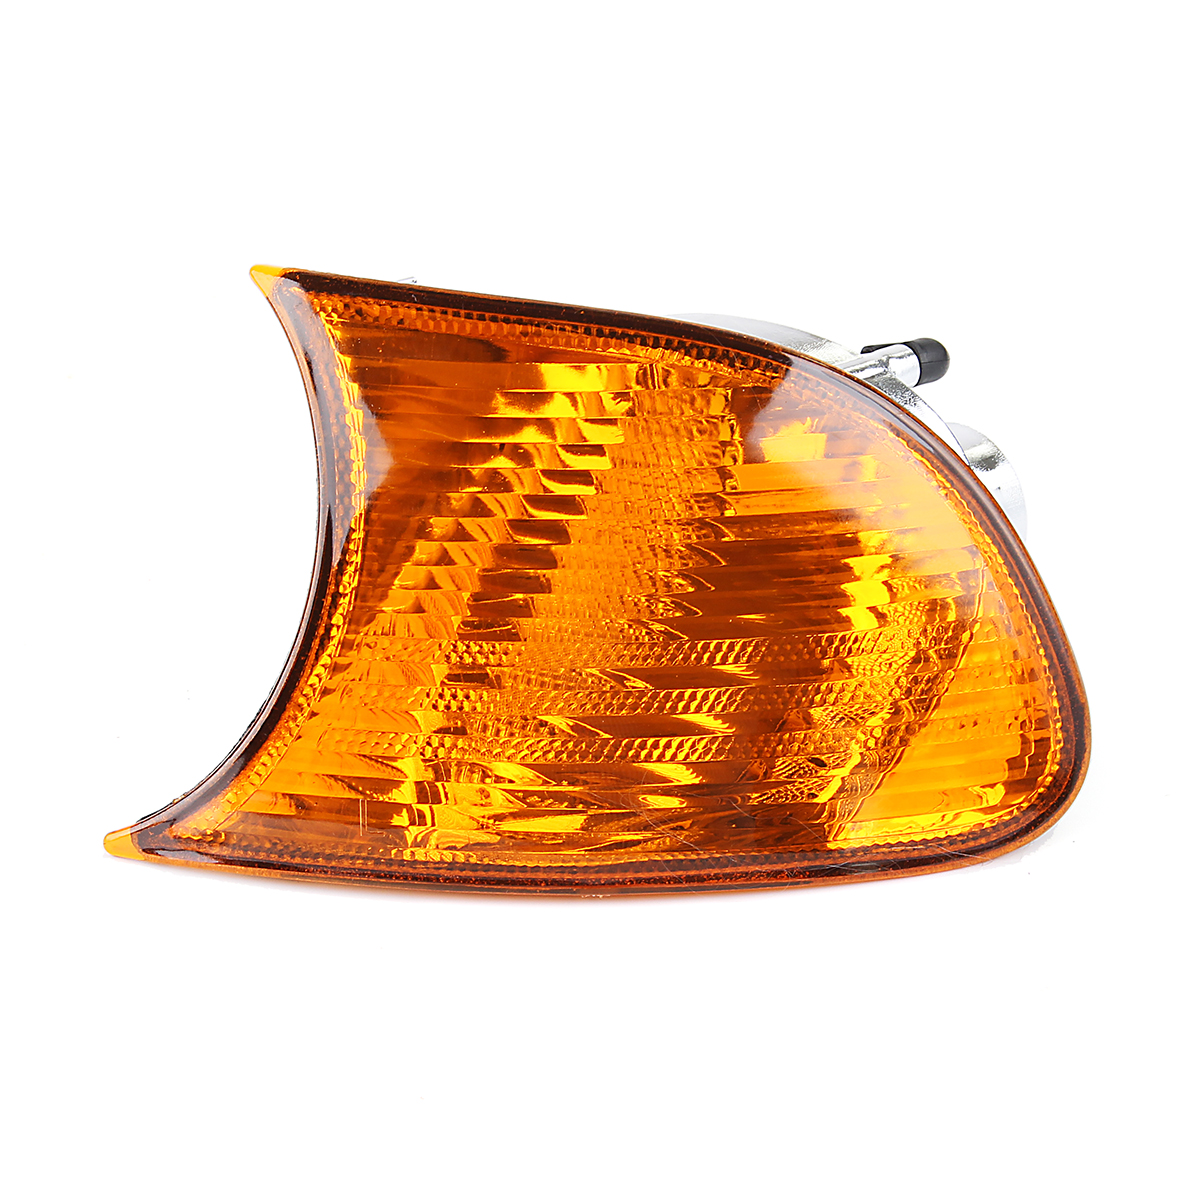 Front Left/Right Amber Parking Corner Signal Lamp Light Cover for BMW E46 3 Series M3